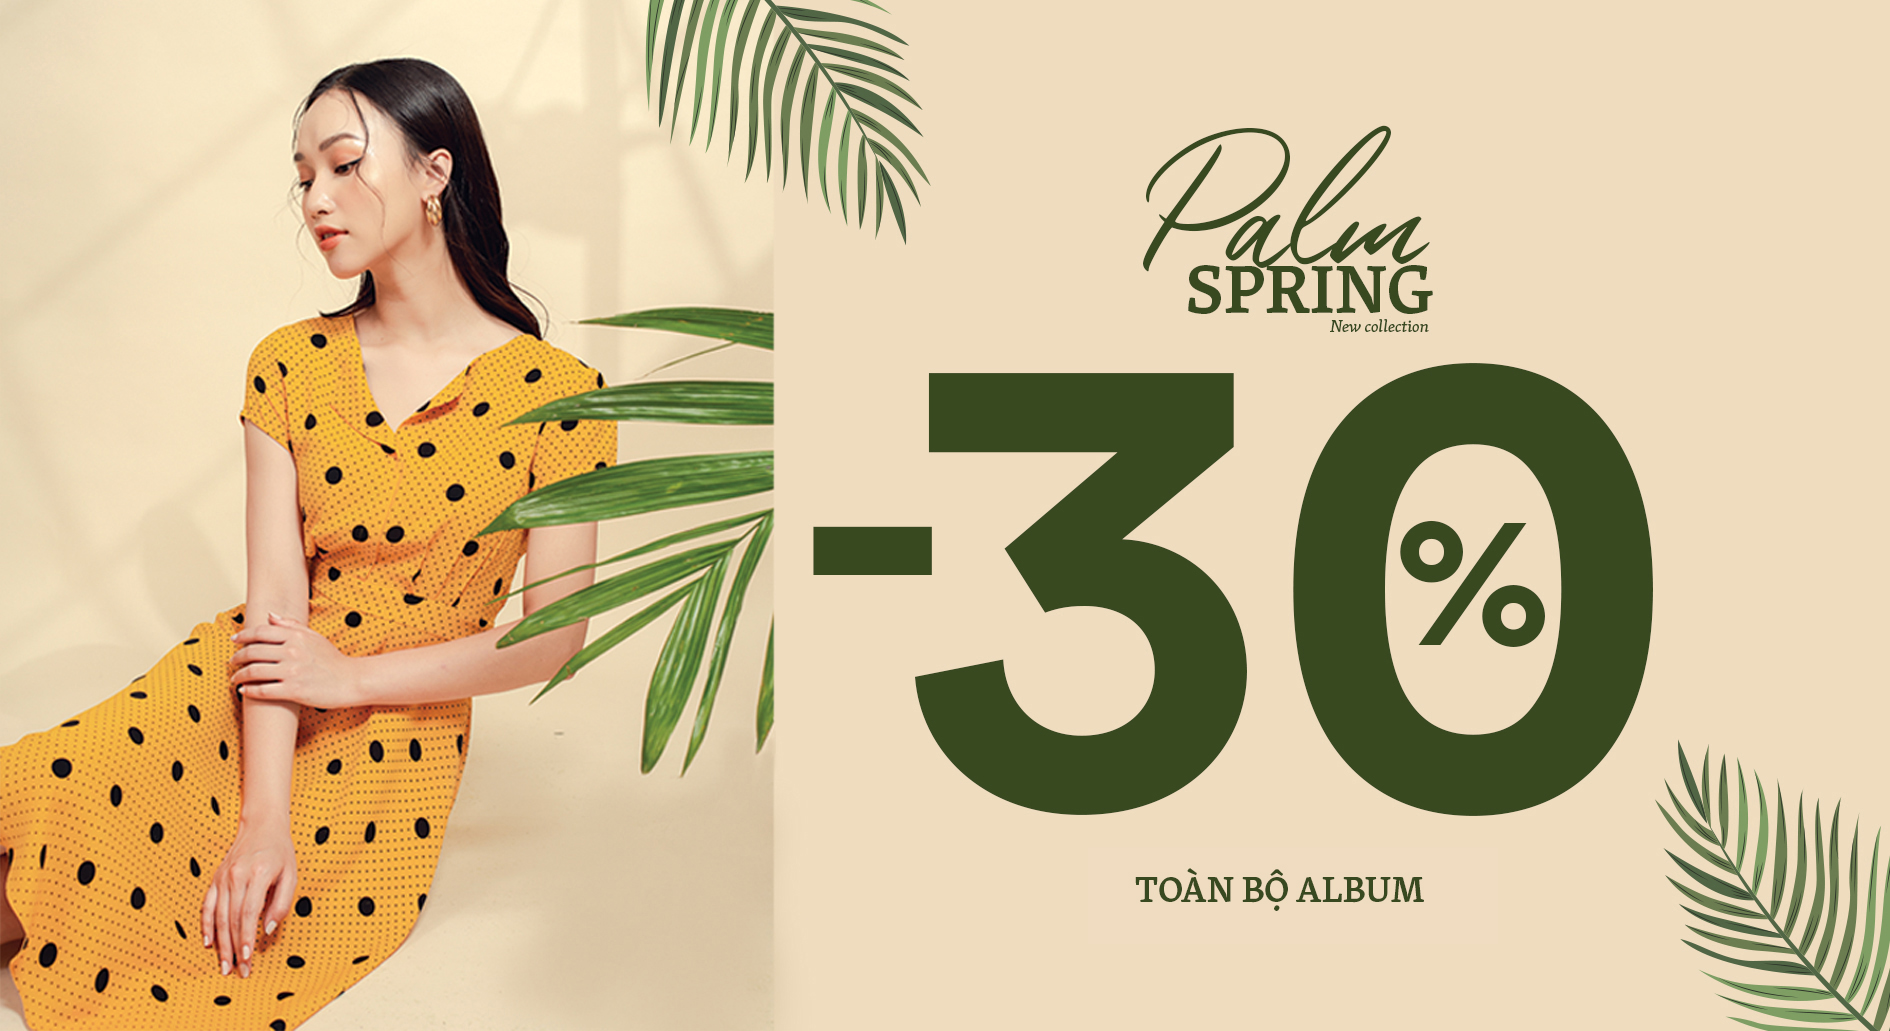 PALM SPRING - NEW COLLECTION